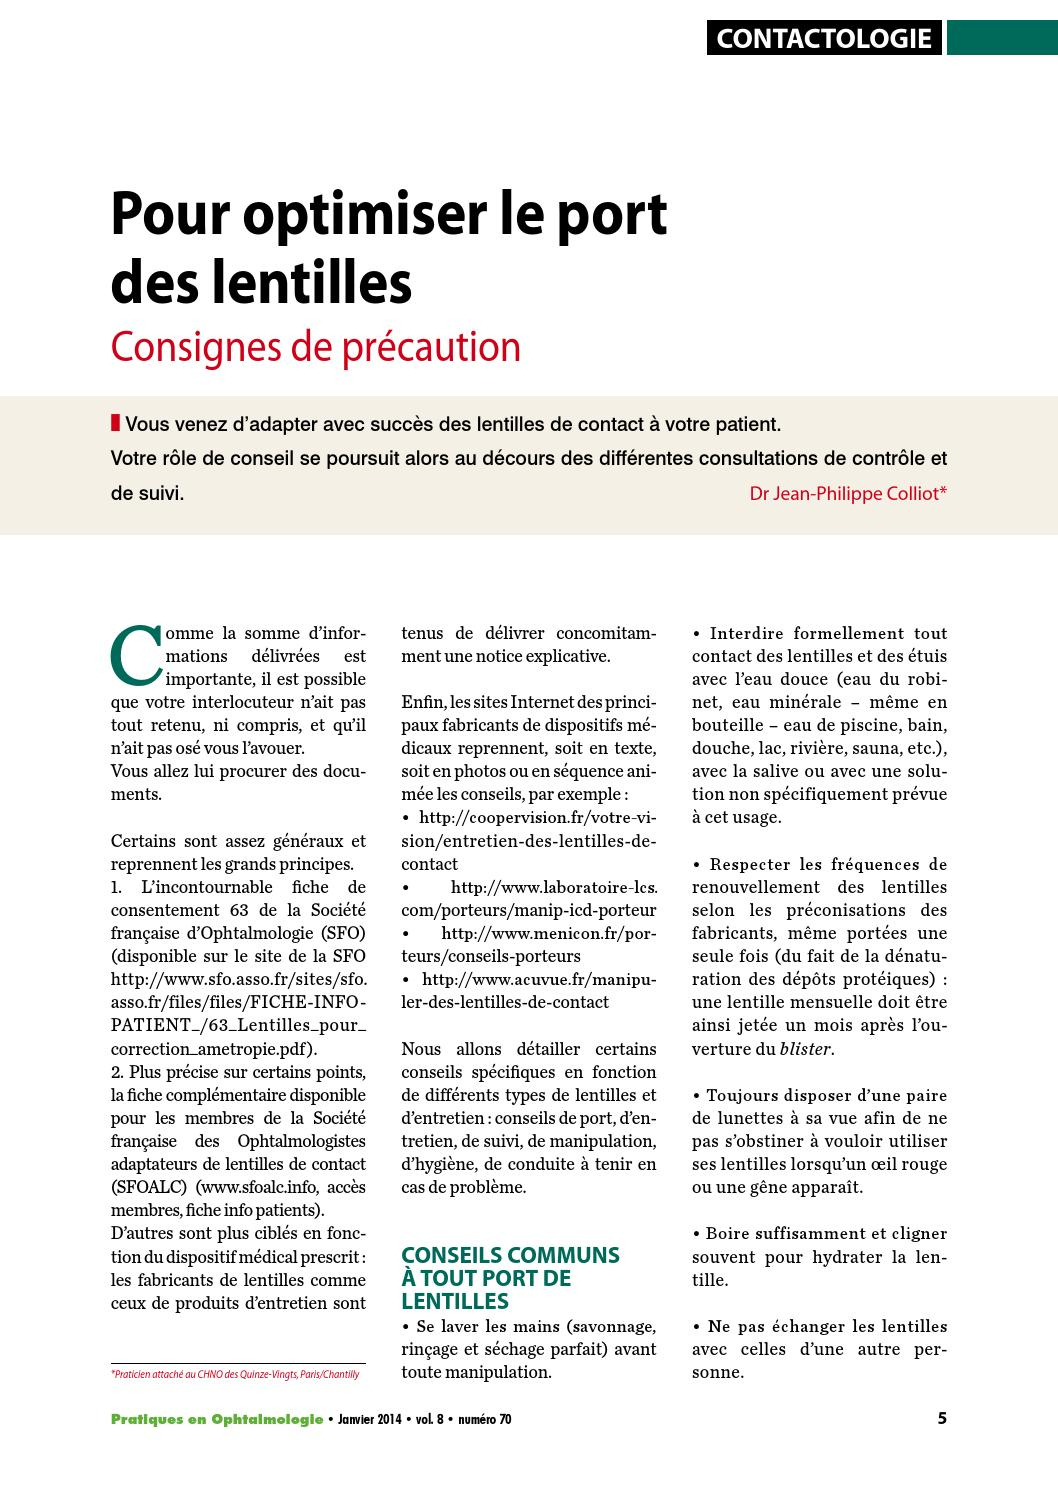 Po70 05A09 Contacto By Expressions Pharma - Issuu intérieur Lentilles Piscine